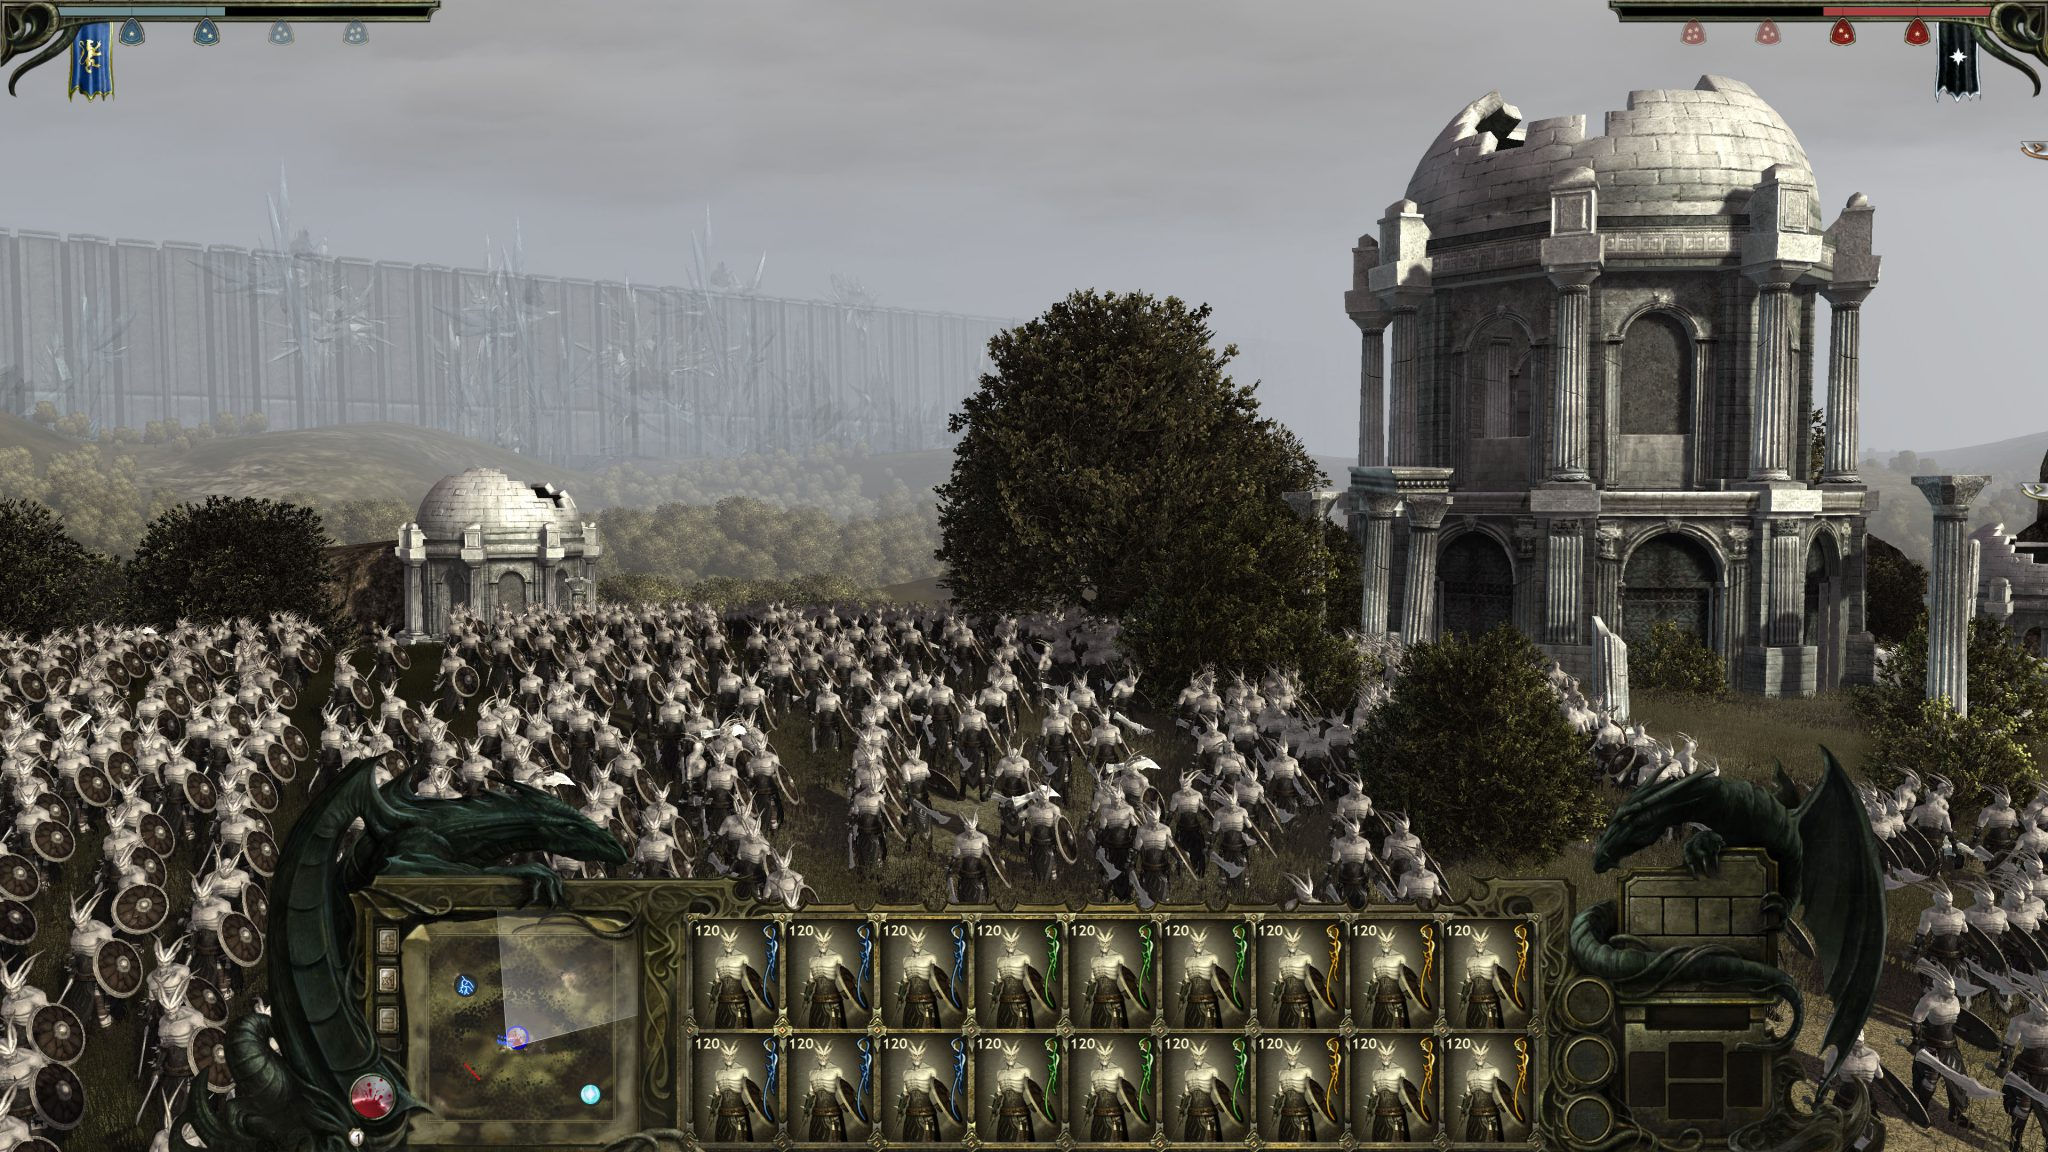 King_Arthur_II_screenshot (15)